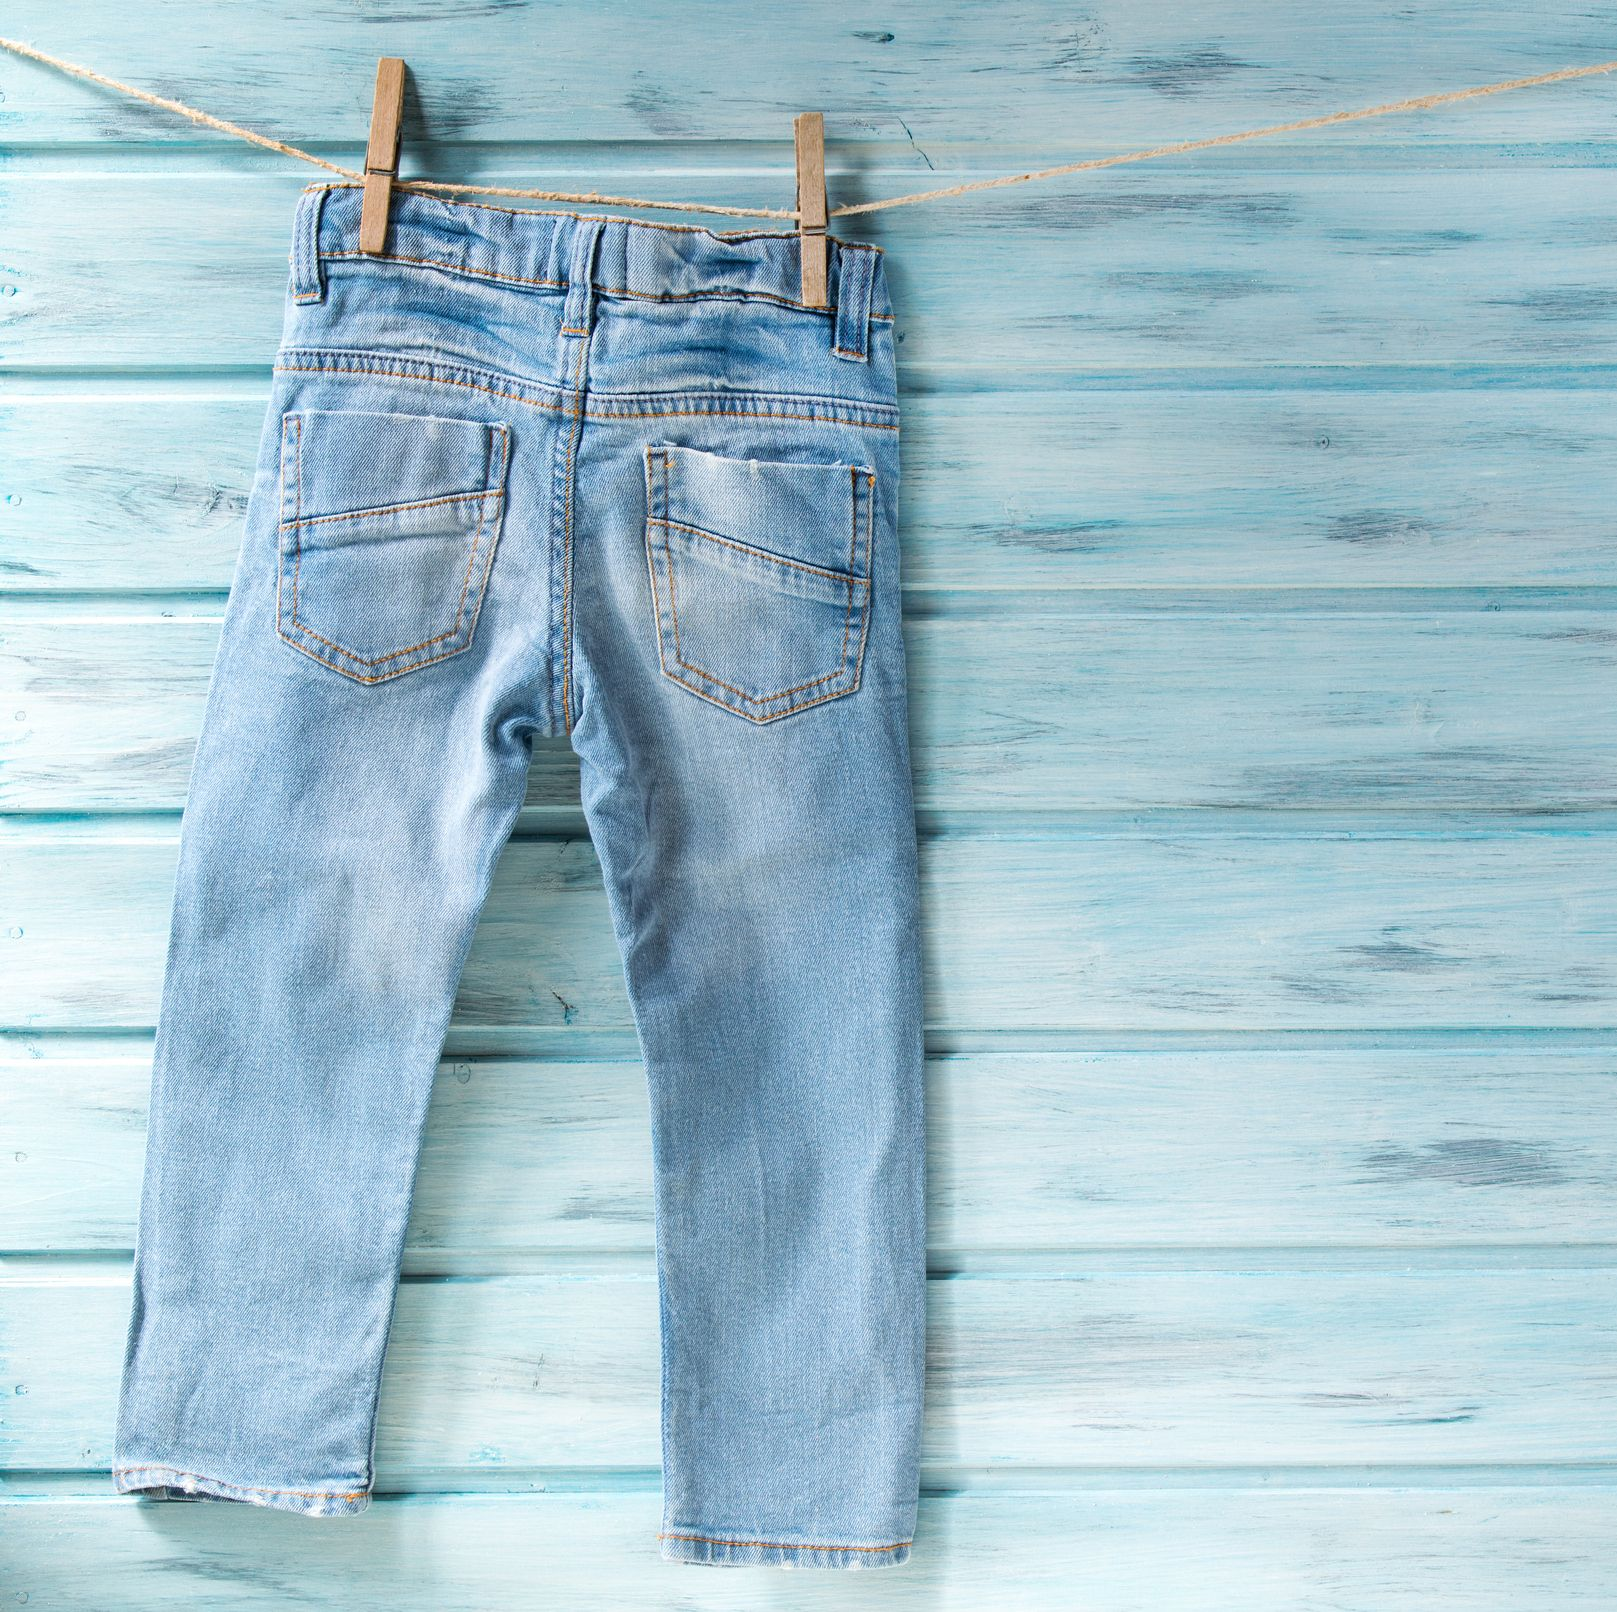 How to Wash Jeans the Right Way, According to Cleaning and Textile Experts